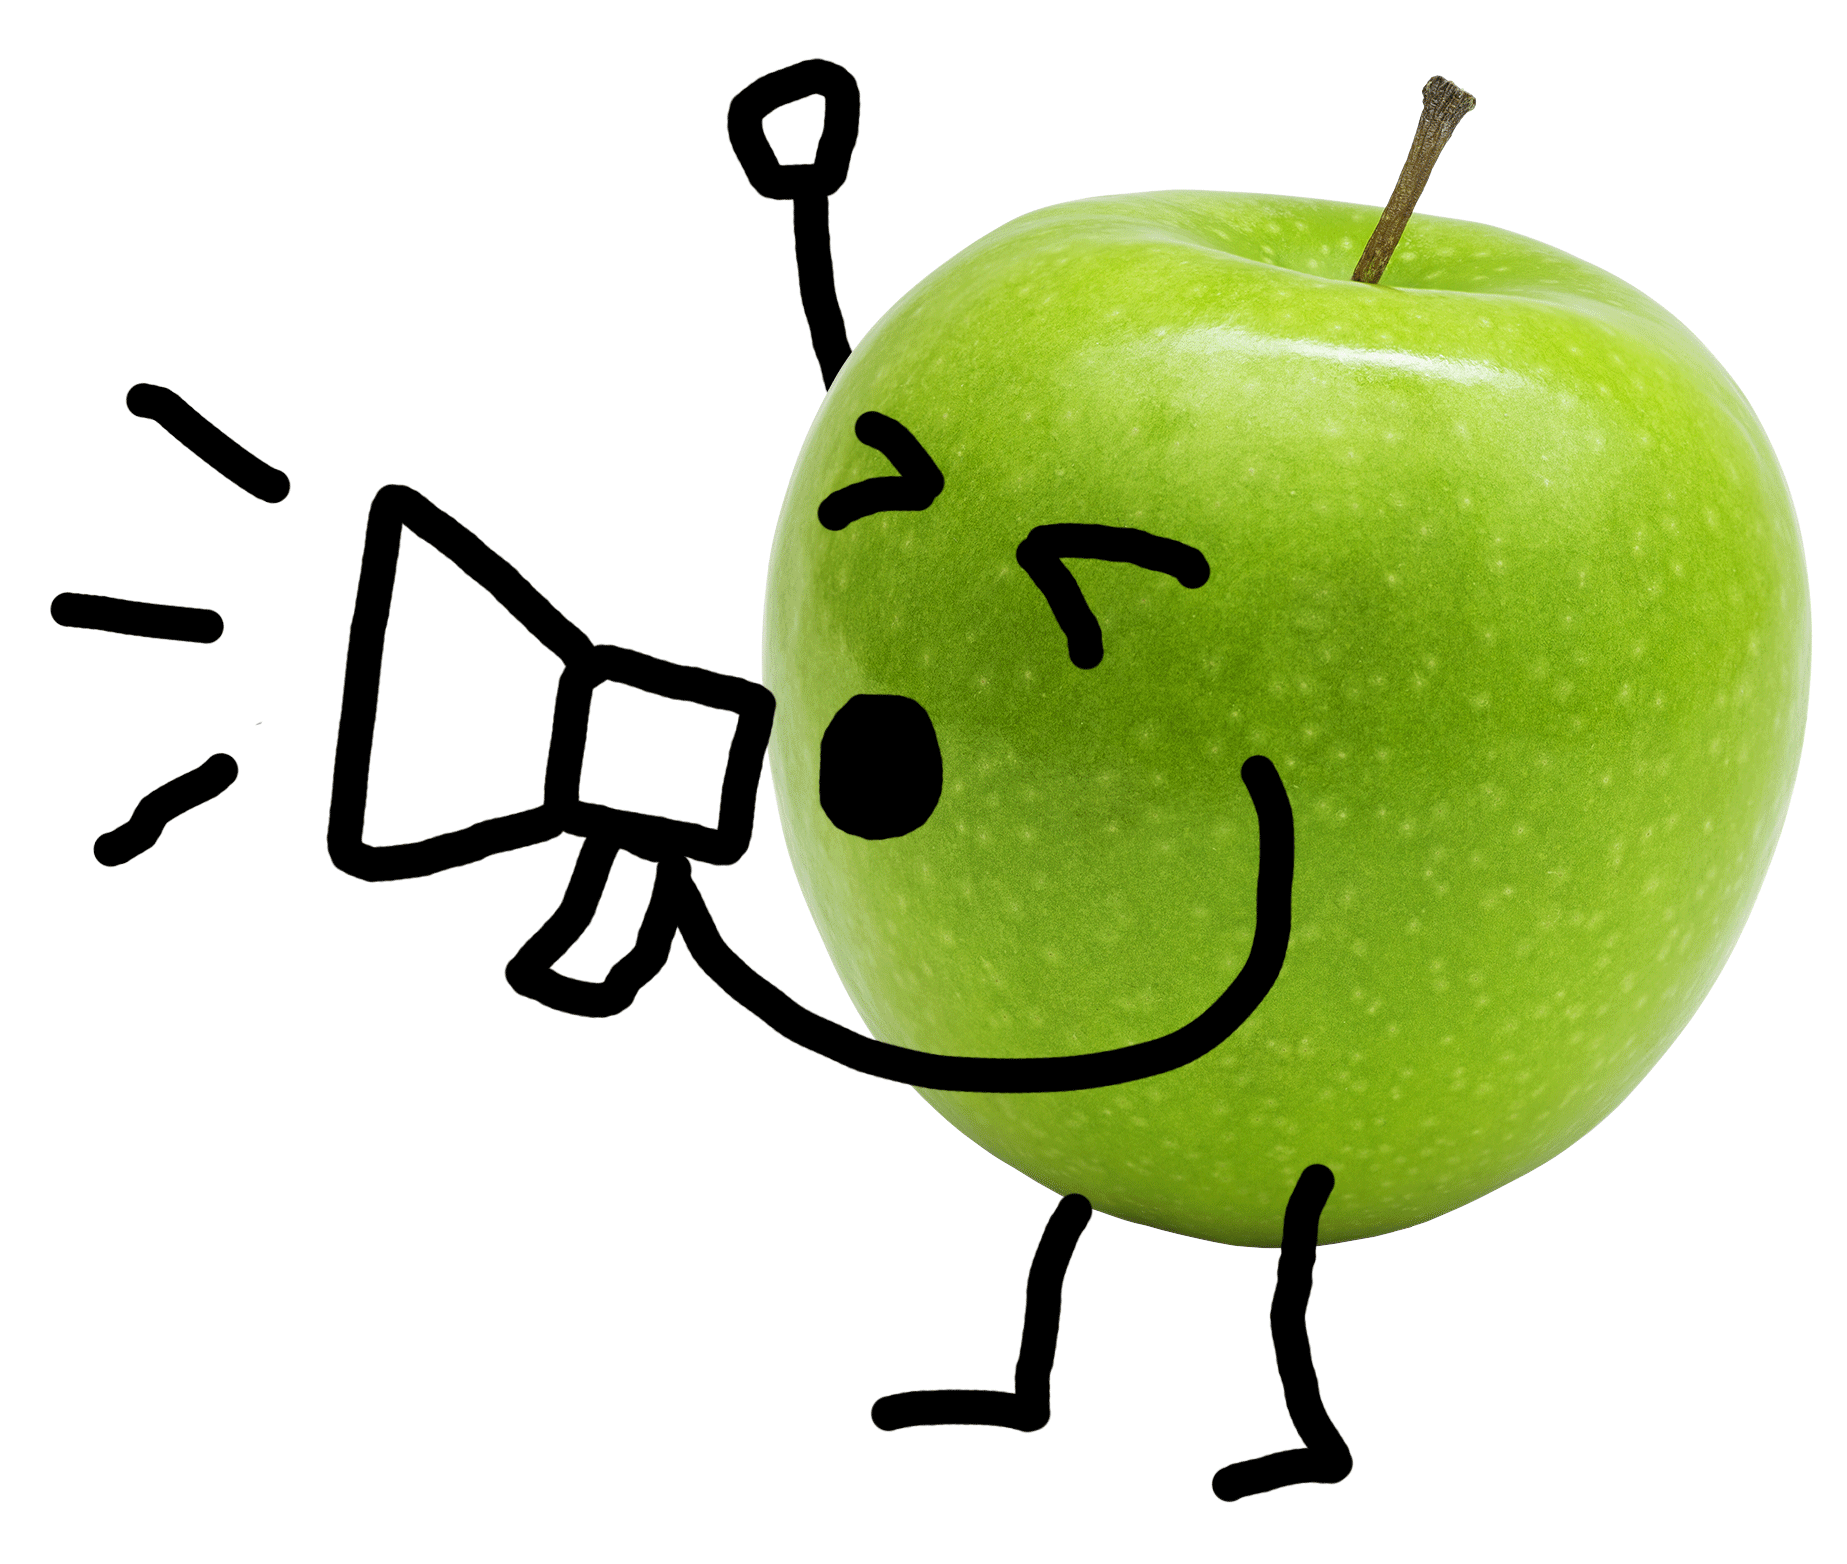 Green Apple shouting image